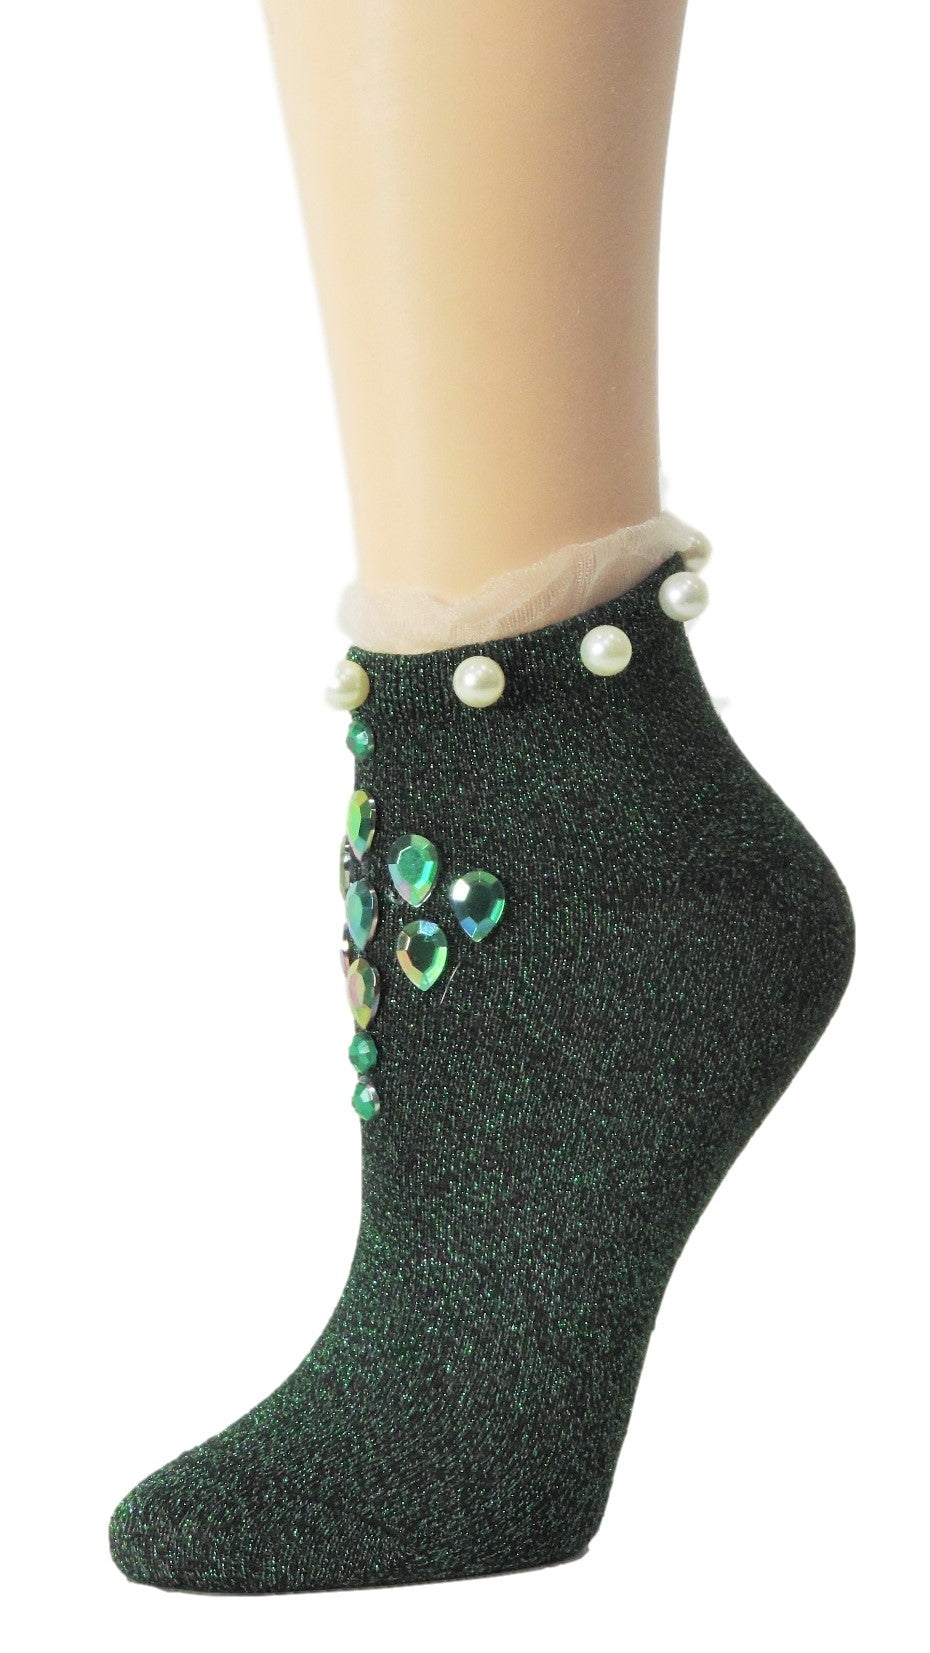 Stunning Green Custom Ankle Socks with crystals - Global Trendz Fashion®